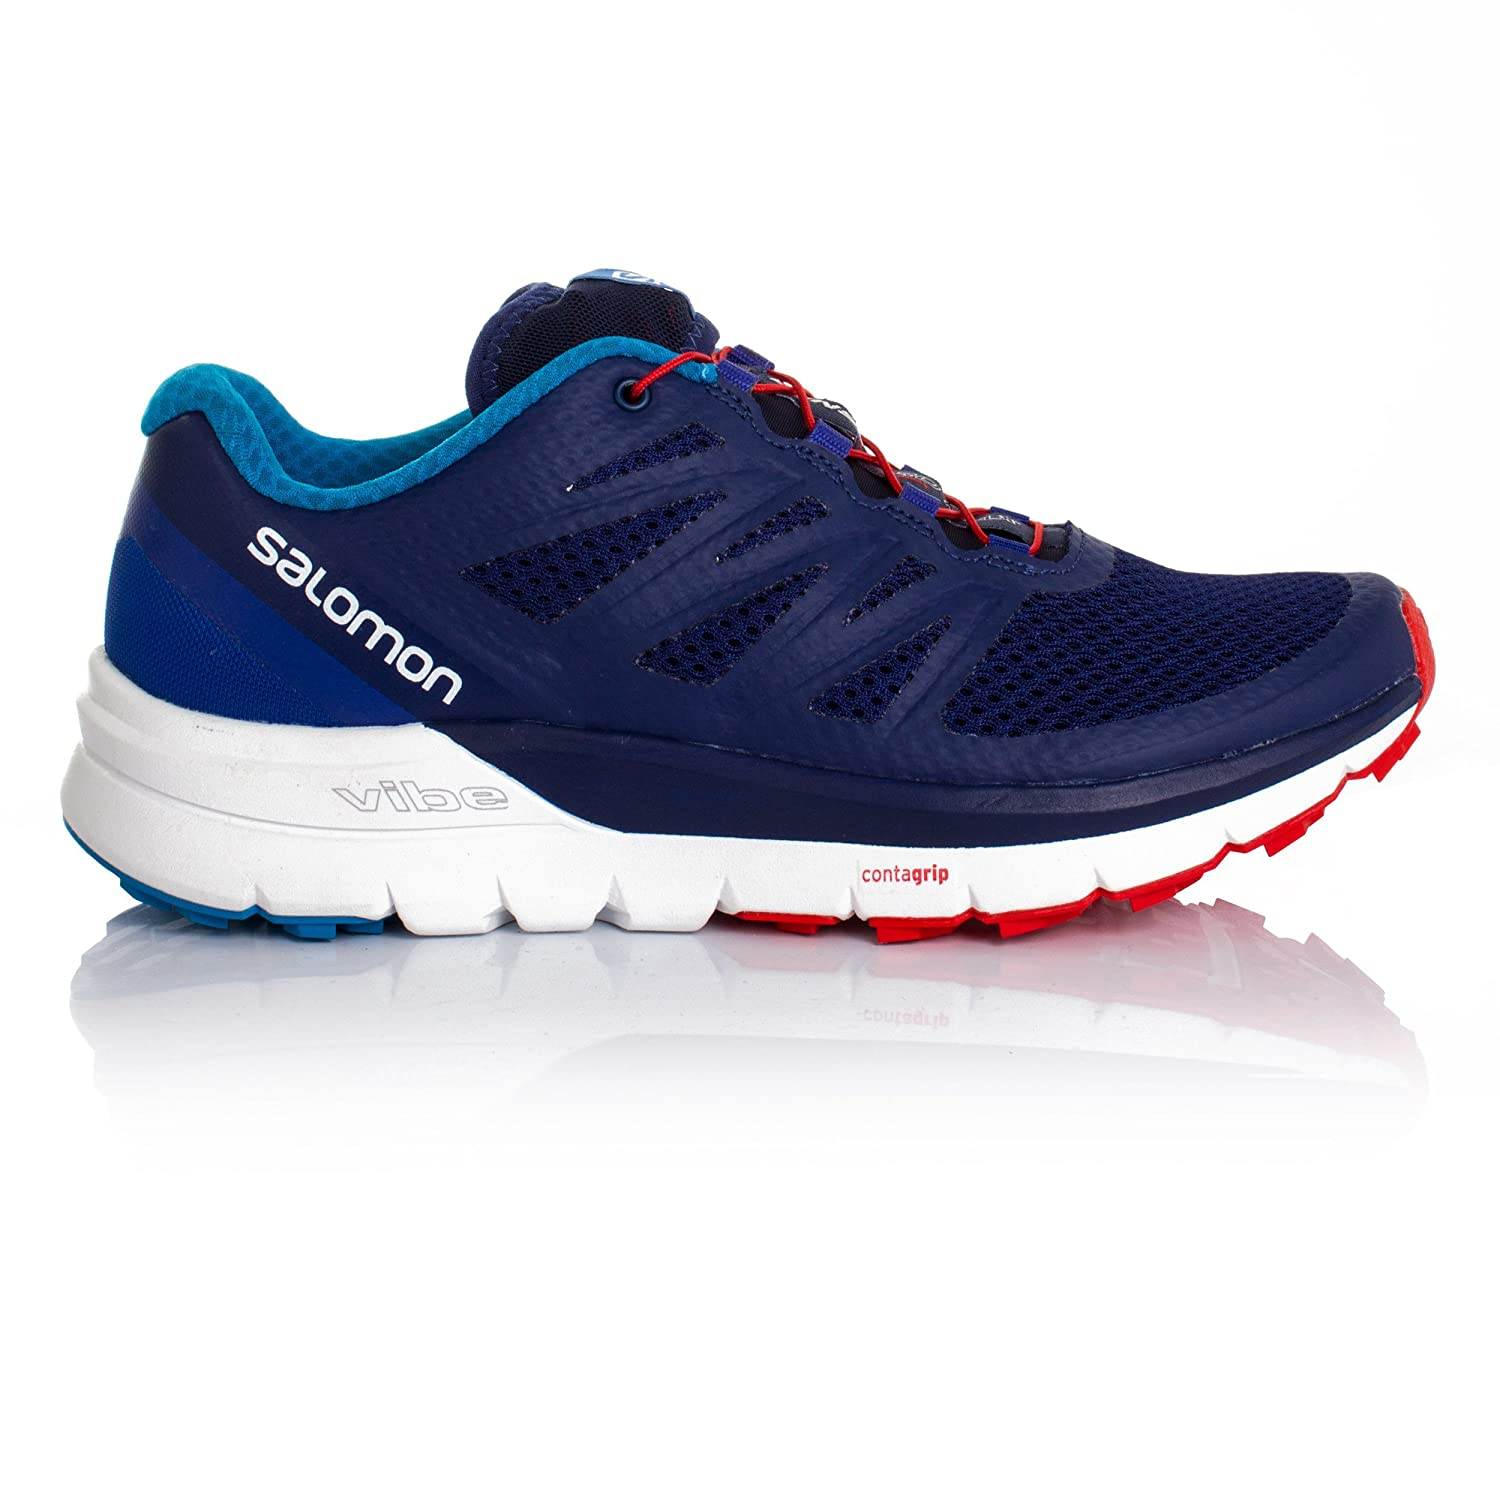 Salomon Sense Pro Max Trail Running Shoe Men's Blue Depths